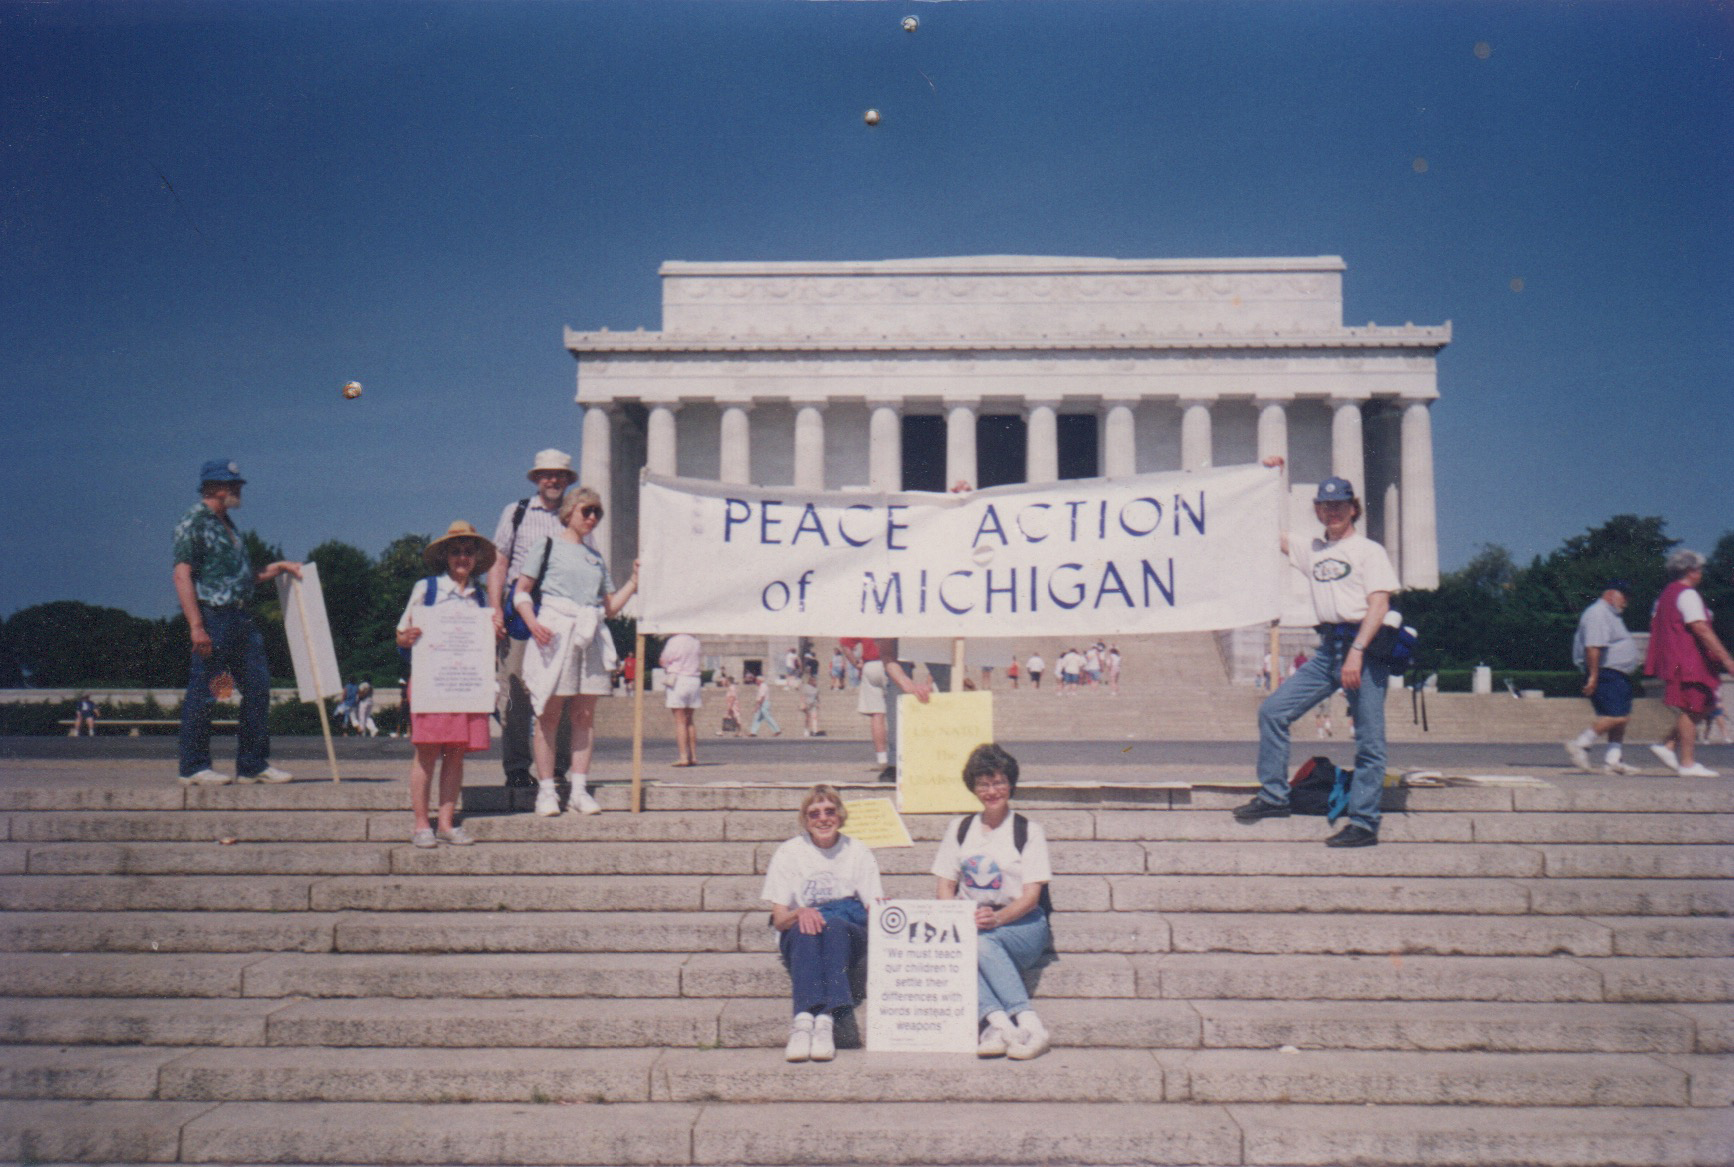 Pat Lent and Sister Rita Mary Olszewski with the Peace Action of Michigan banner in front of the Lincoln Memorial in Washington, DC.